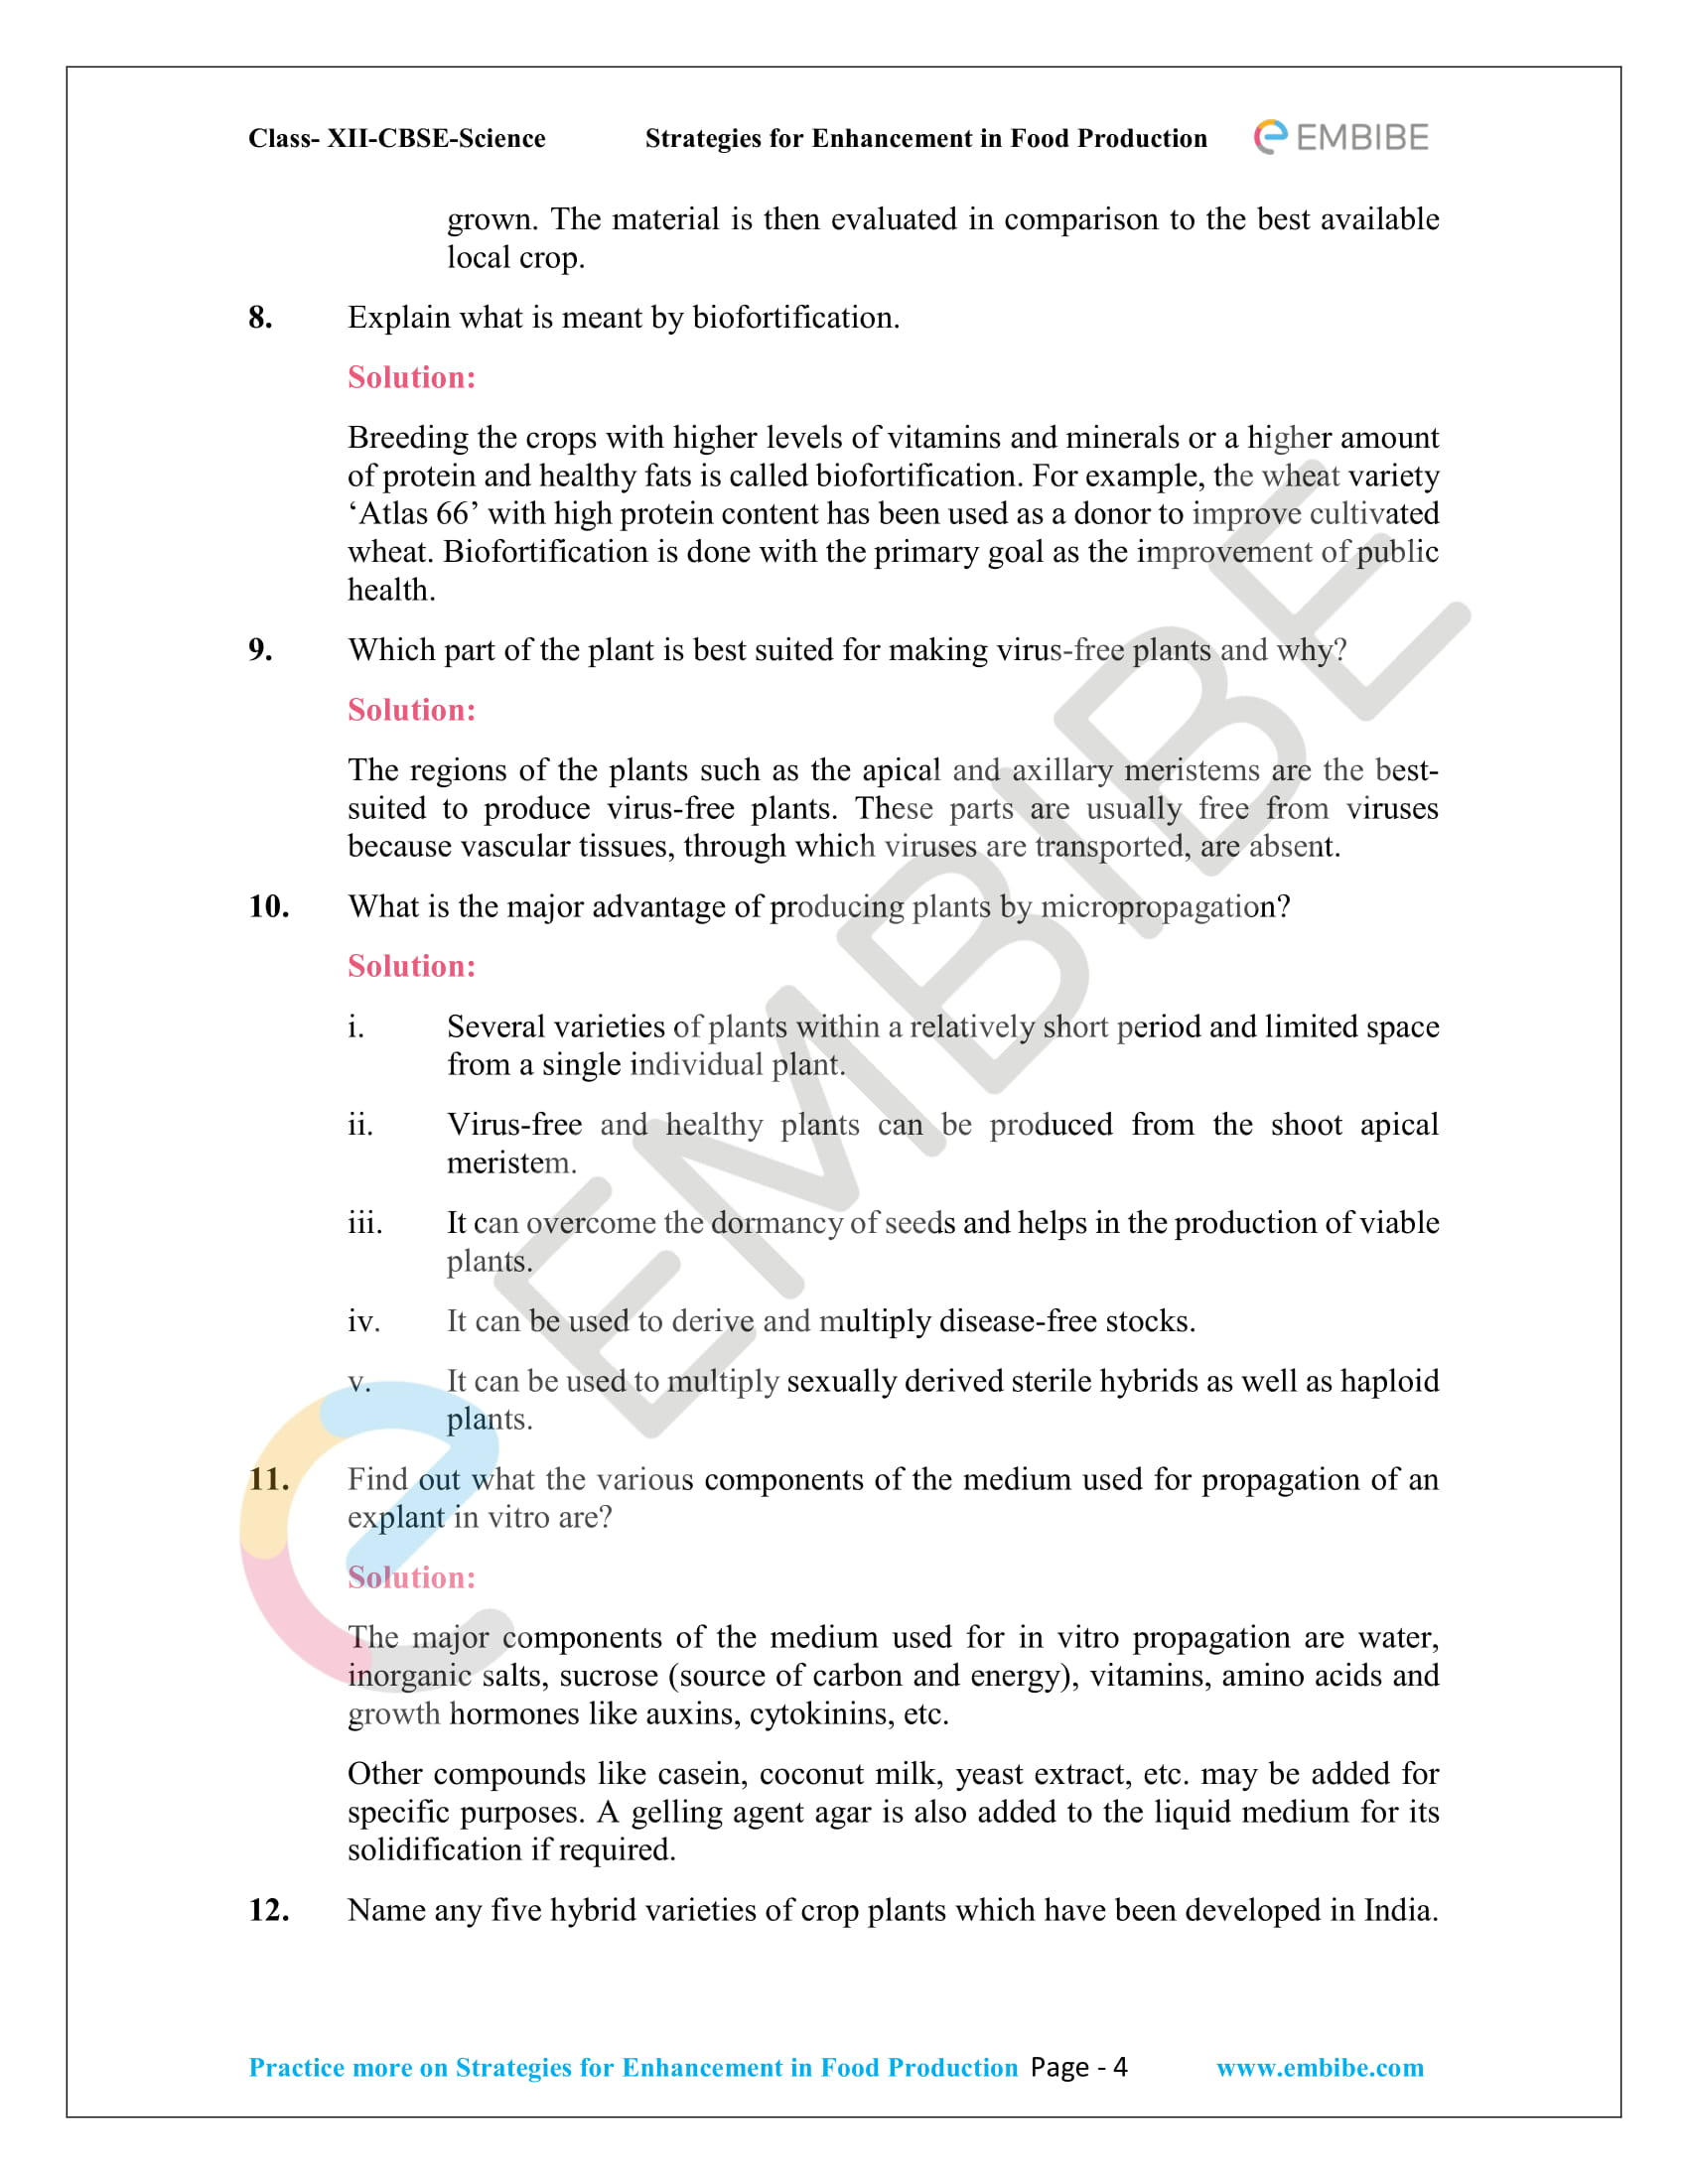 NCERT Solutions For Class 12 Biology Chapter 9: Strategies